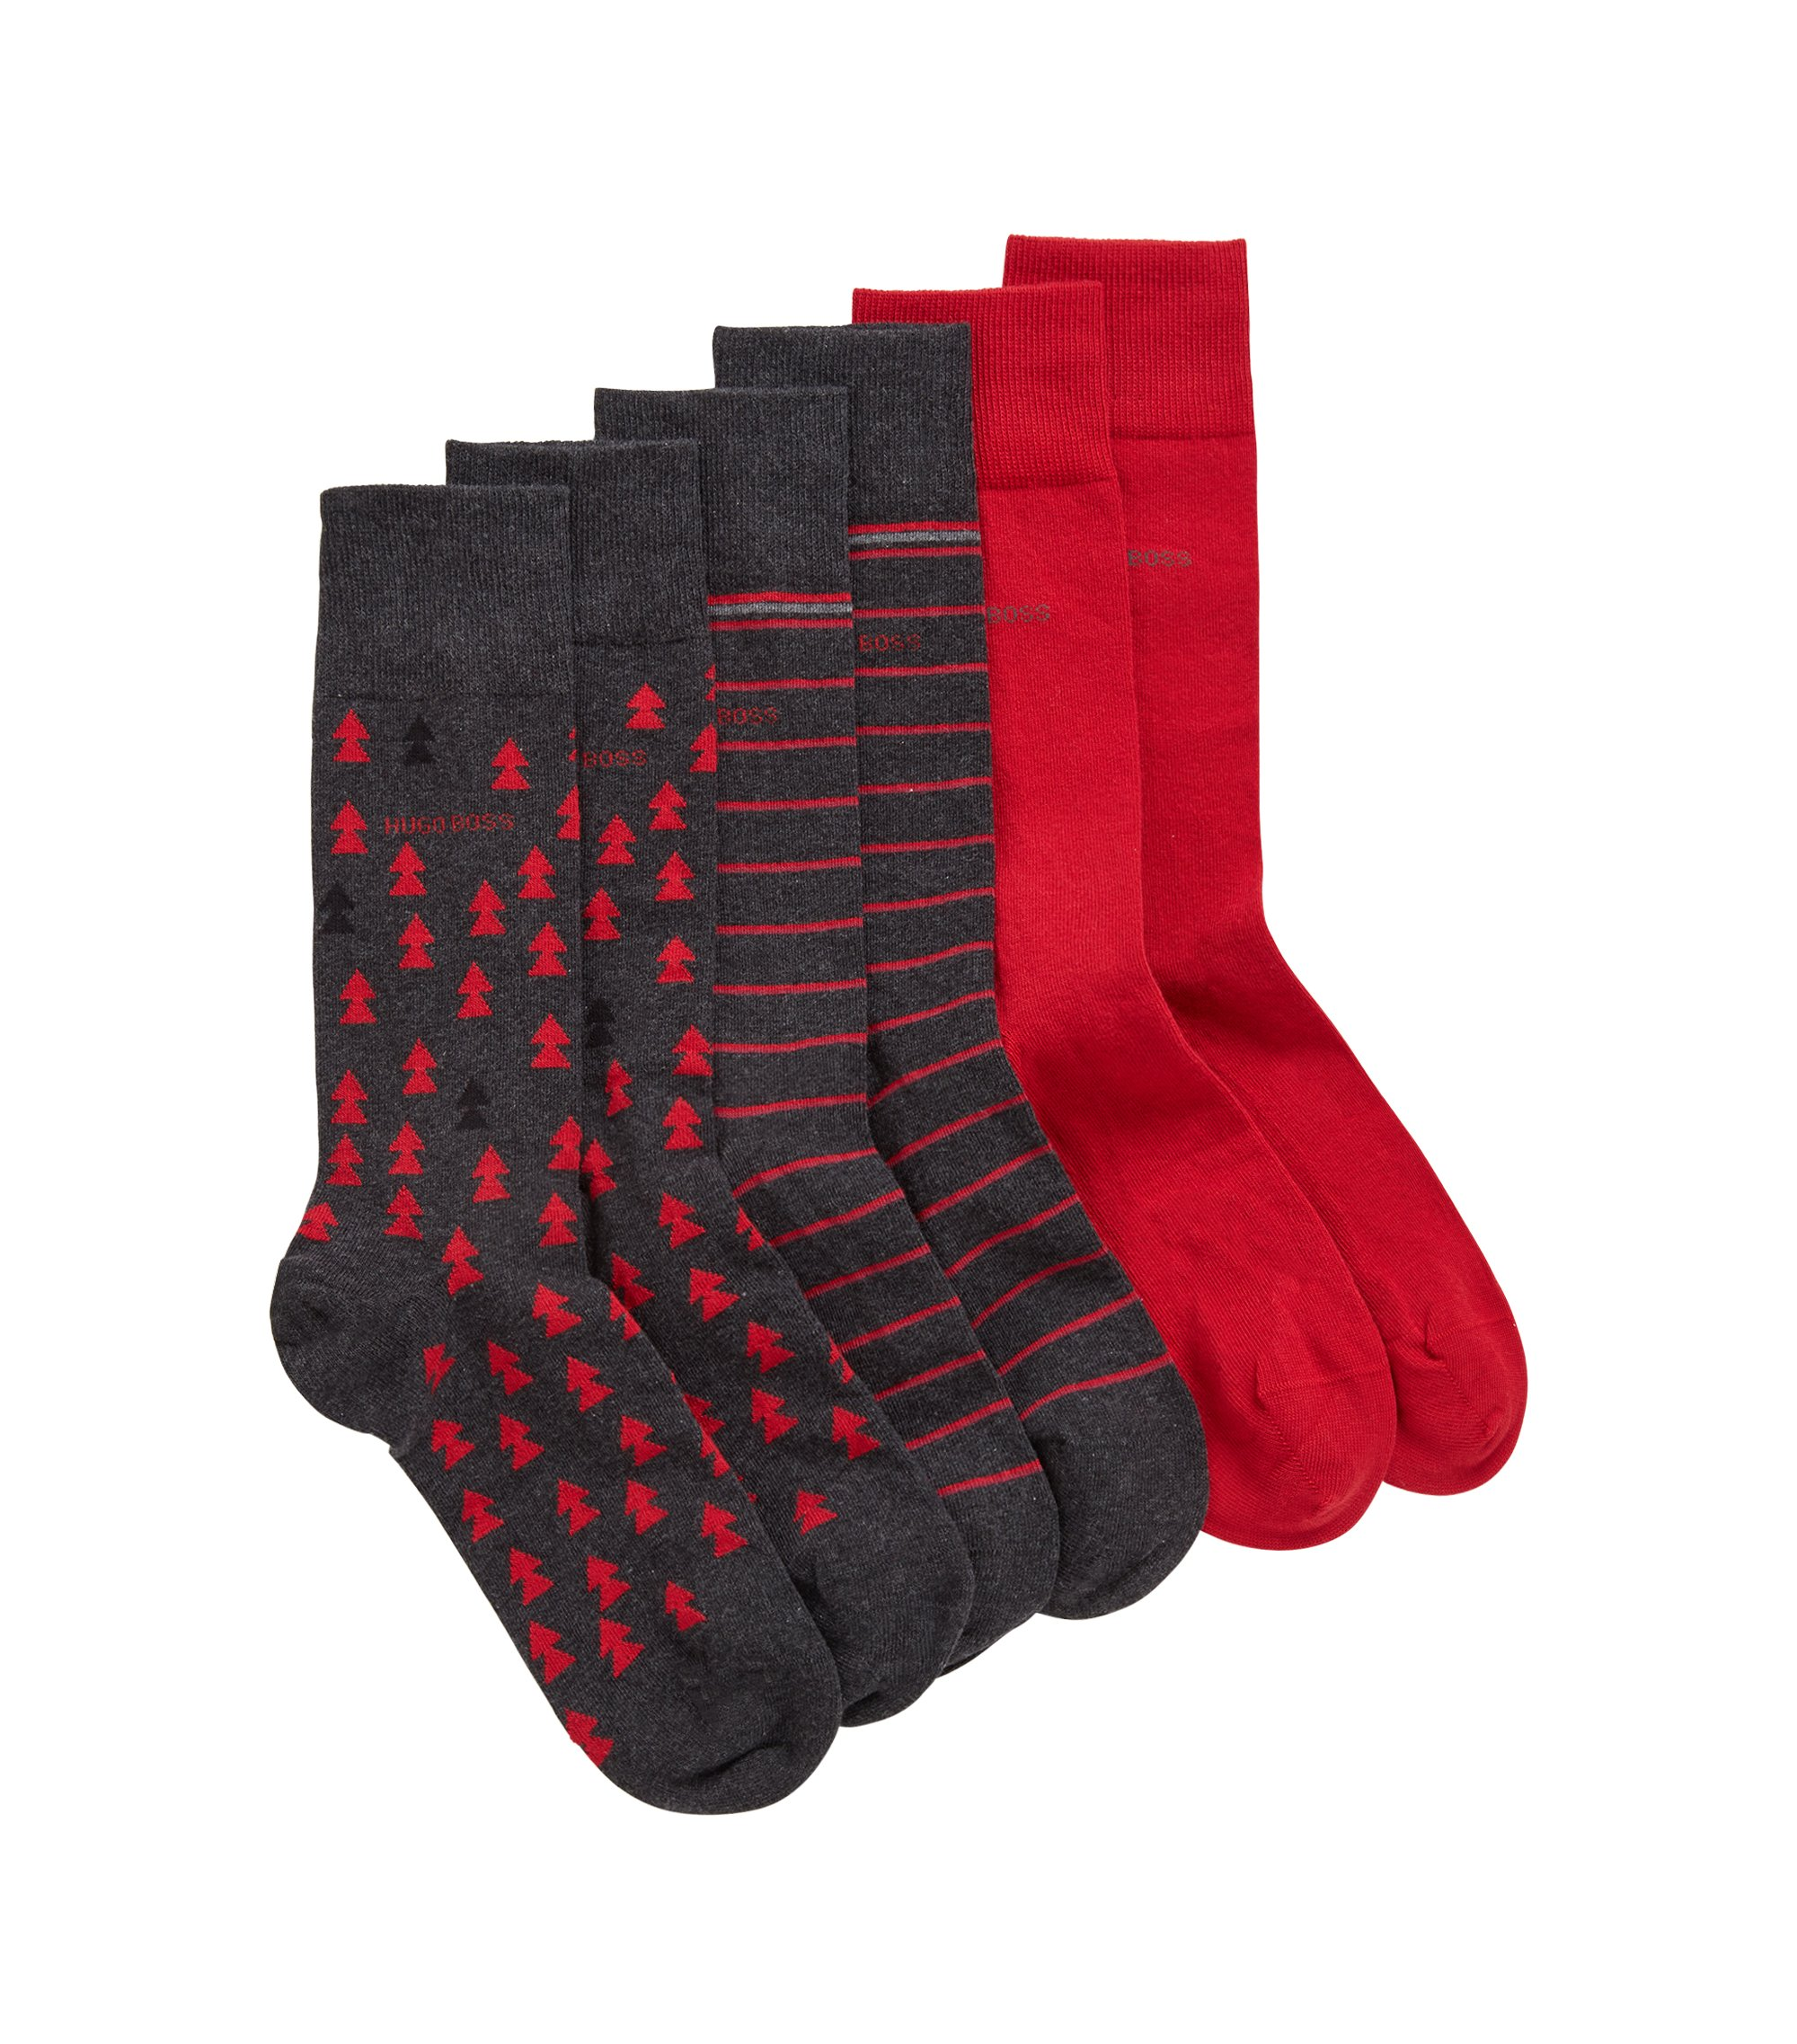 Three-pack of socks in a branded box, Anthracite